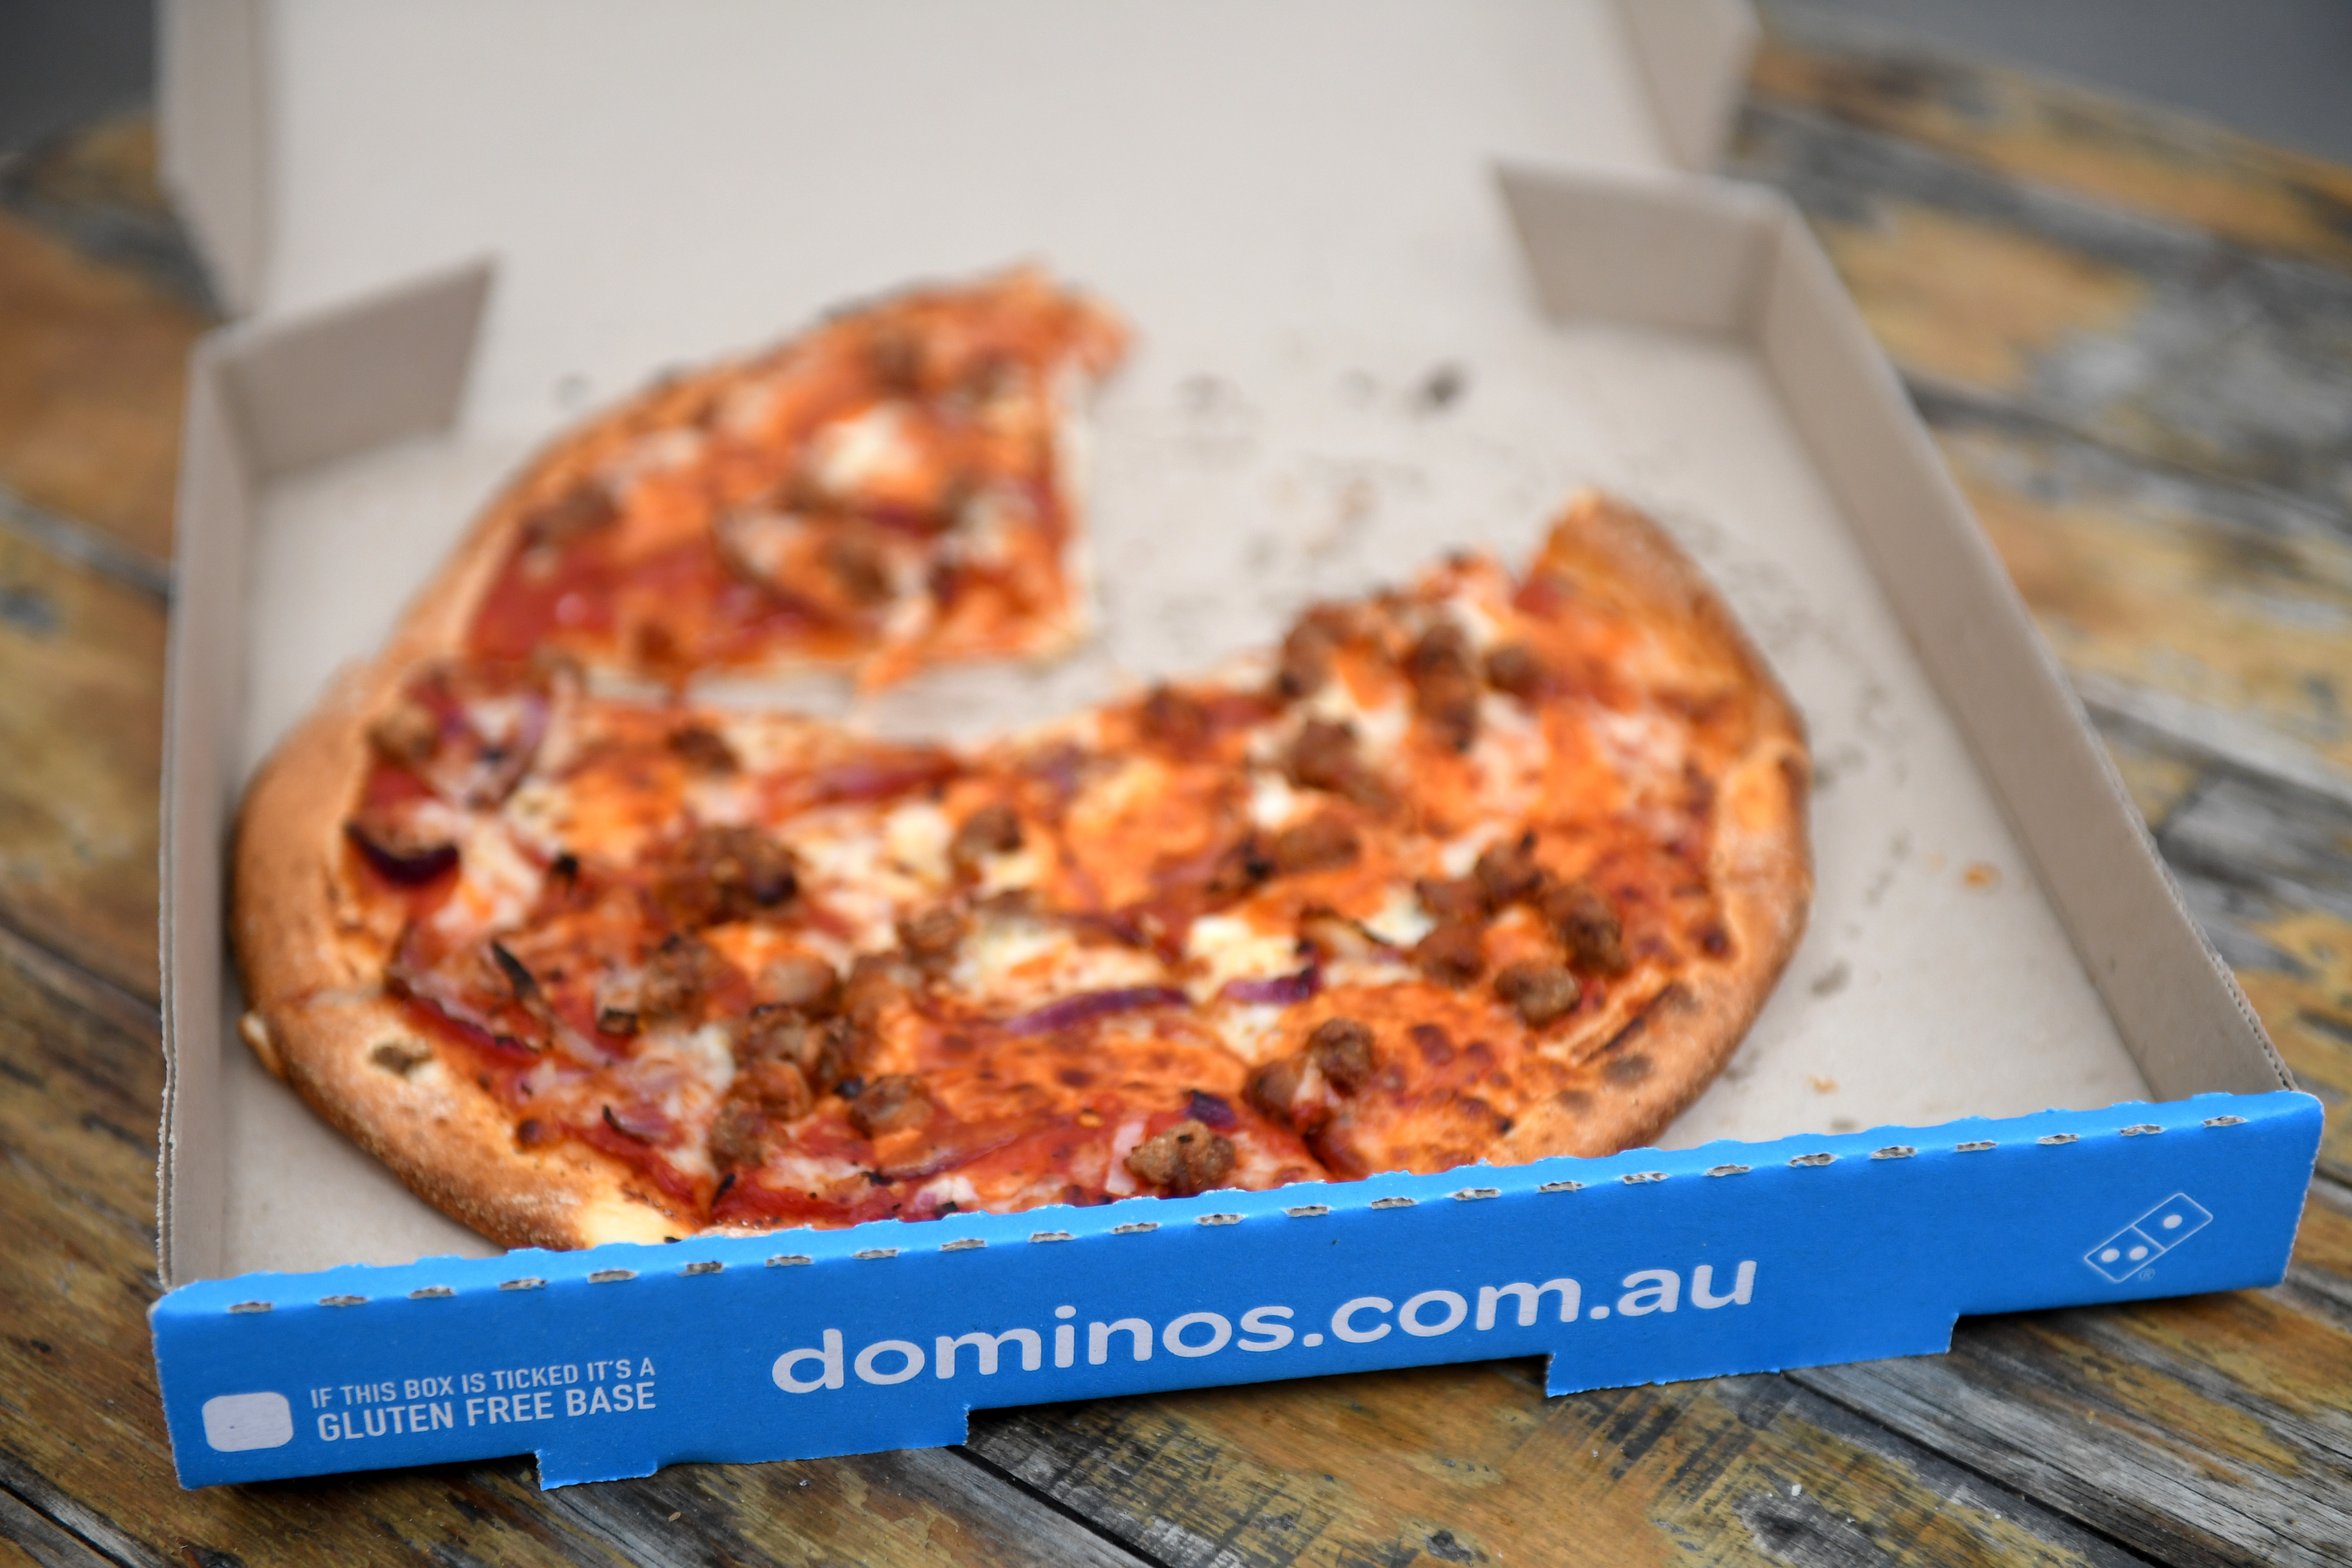 Is Dominos Open On Christmas.Christmas Menu Fail Drags Down Domino S Sales Nz Herald